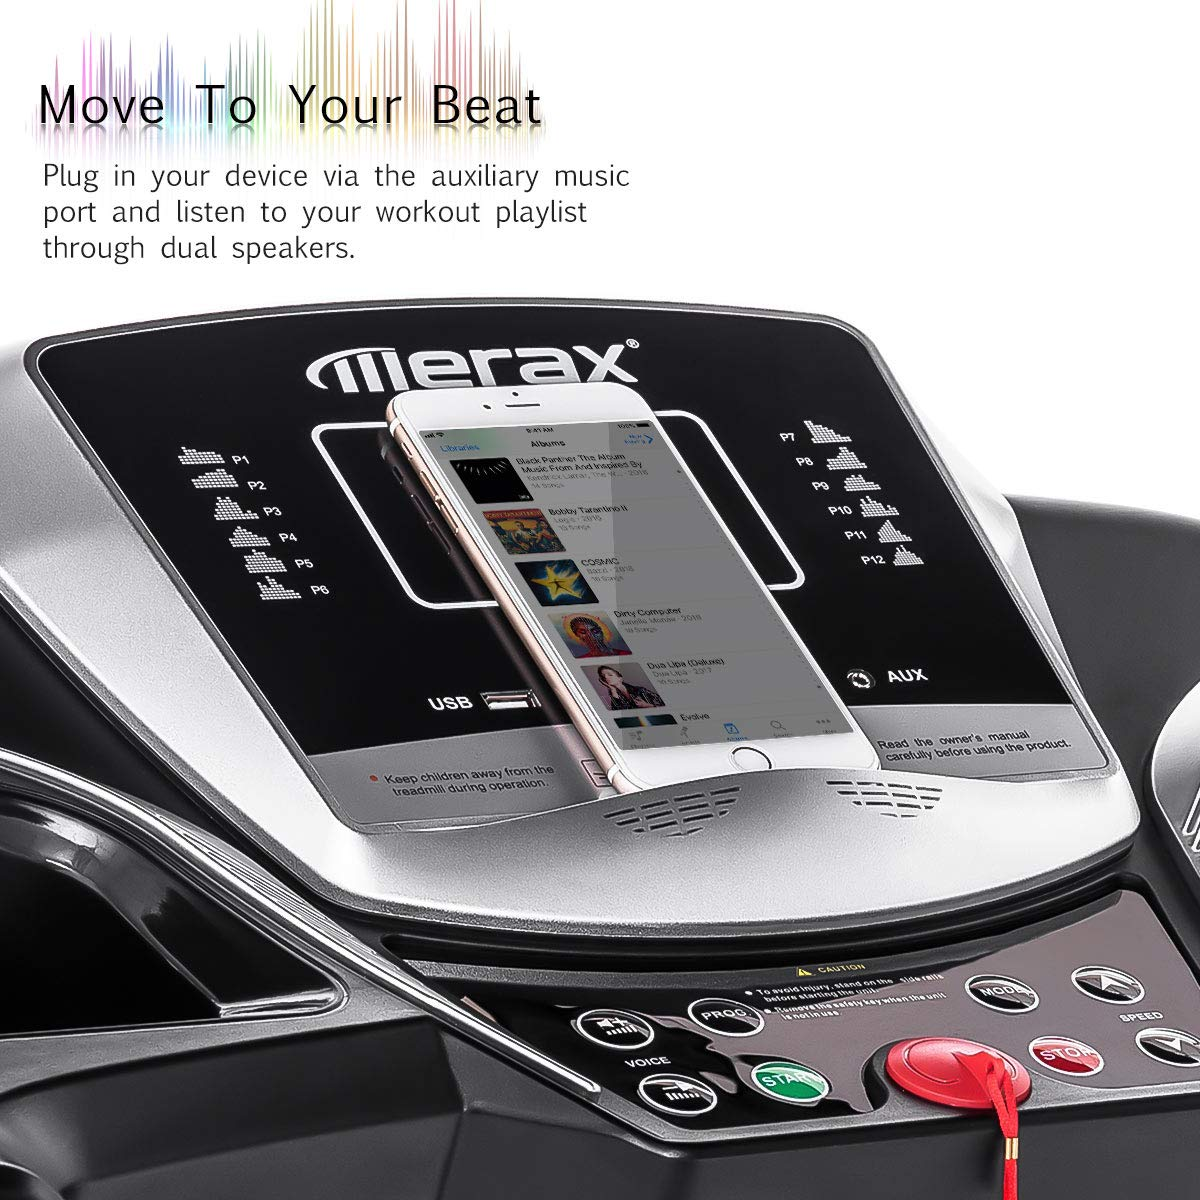 Merax Electric Folding Treadmill Easy Assembly Motorized Running Jogging Machine for Home by Merax (Image #2)